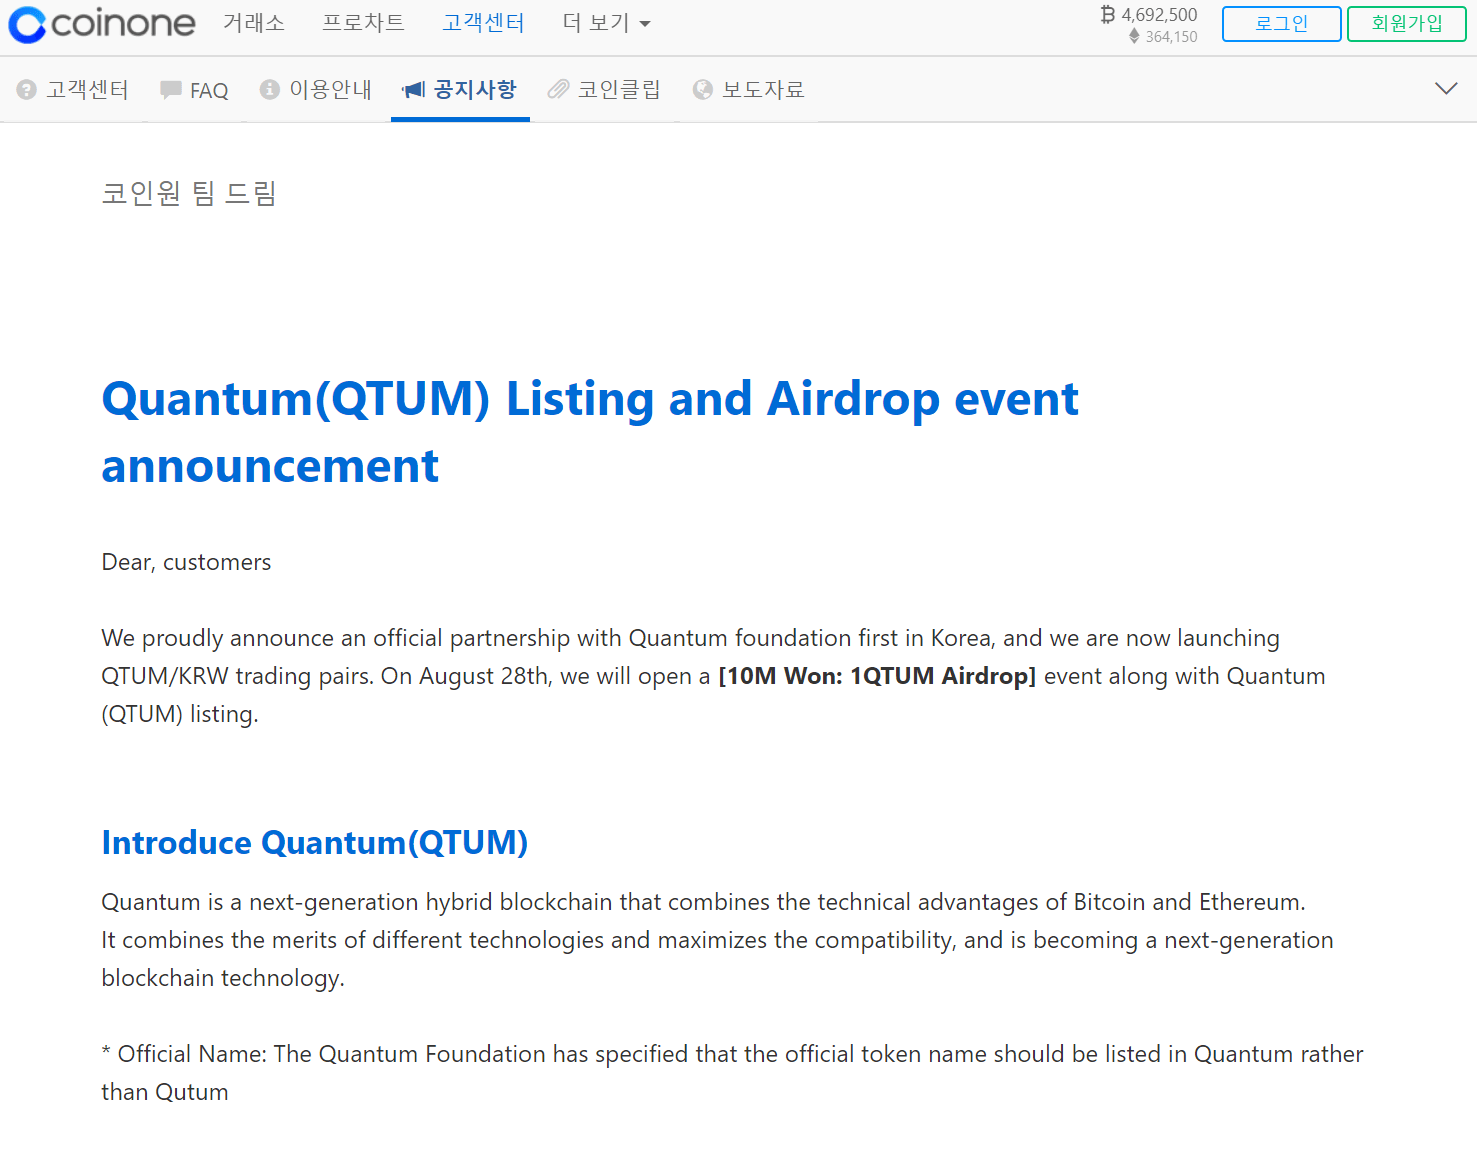 Official announcement from Coinone